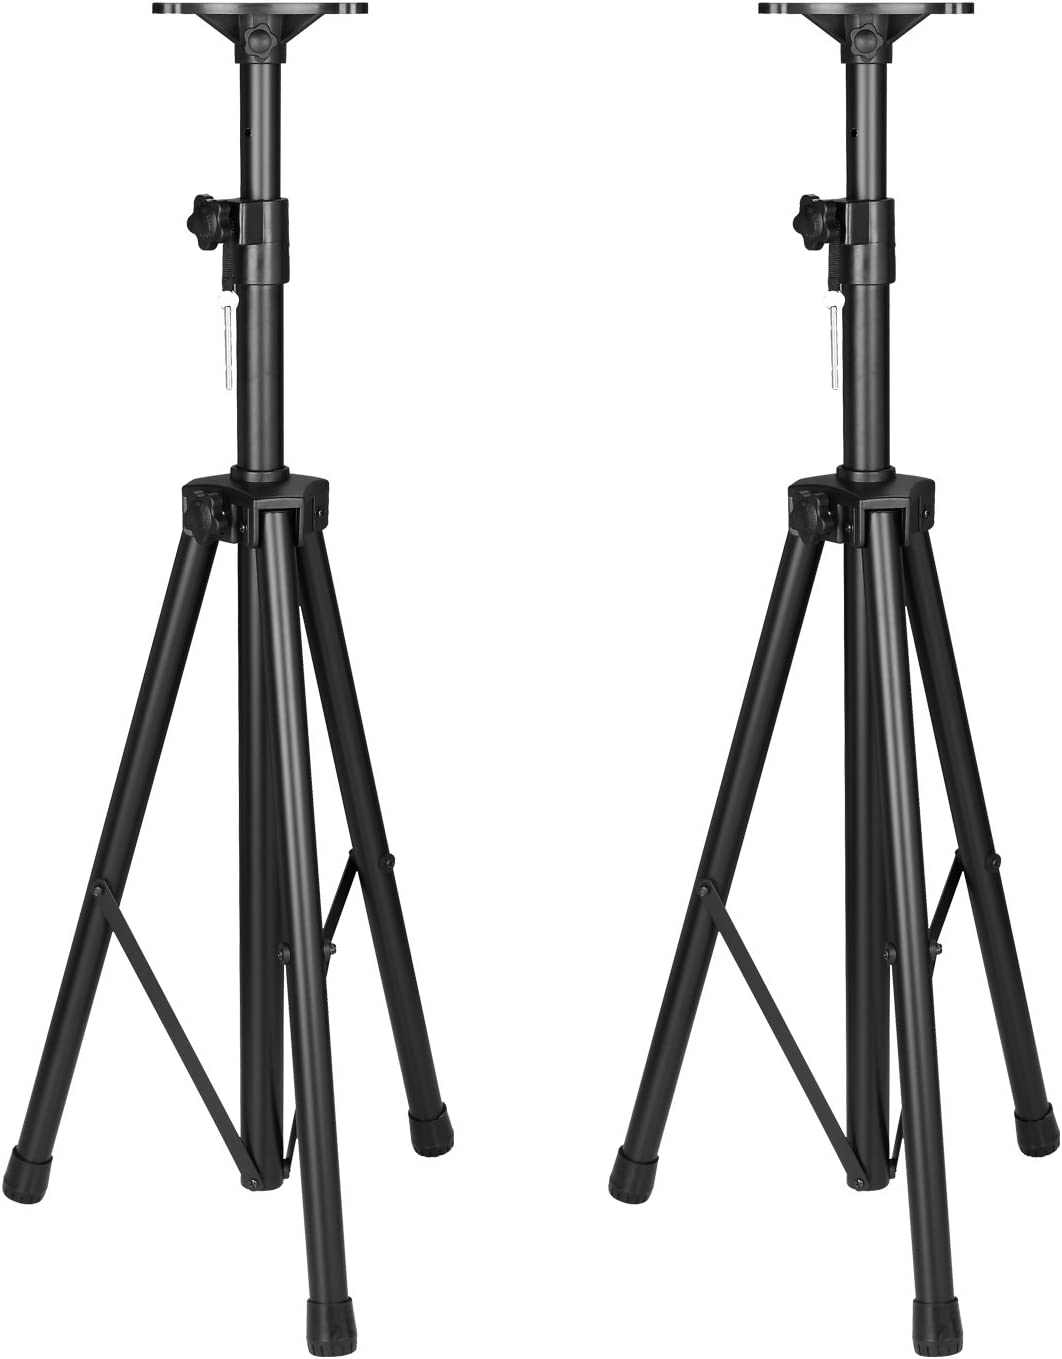 Acesonic SS-689 Professional Heavy Duty Speaker Stands Pair